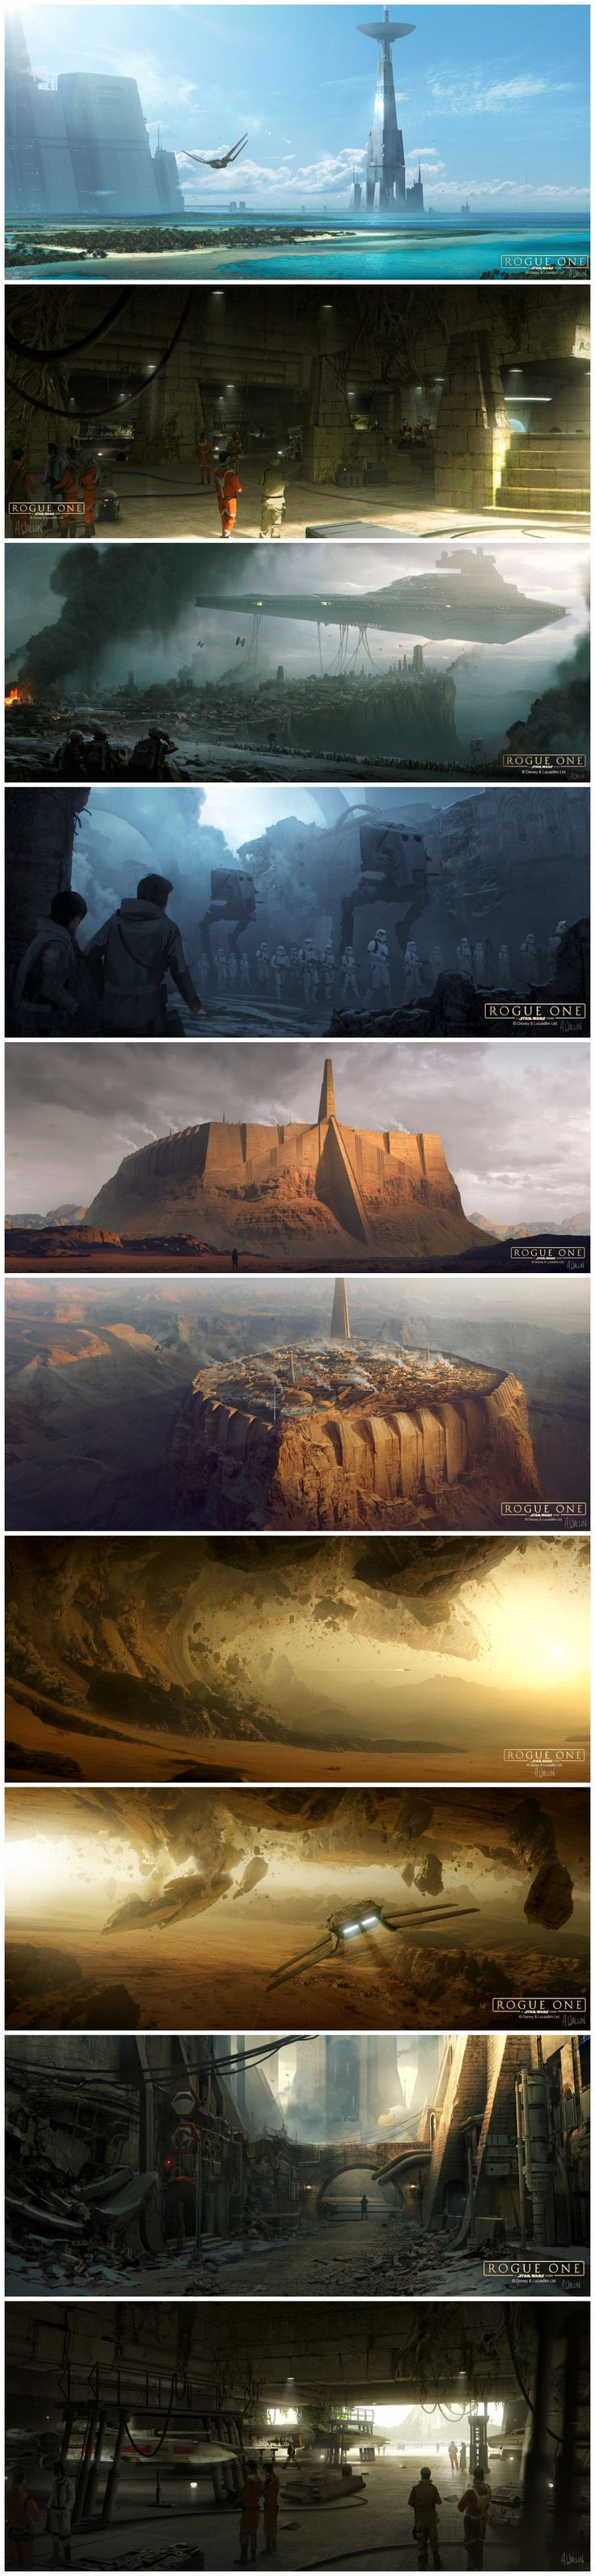 Star Wars: Rogue One Concept Art - Created by Andrée Wallin